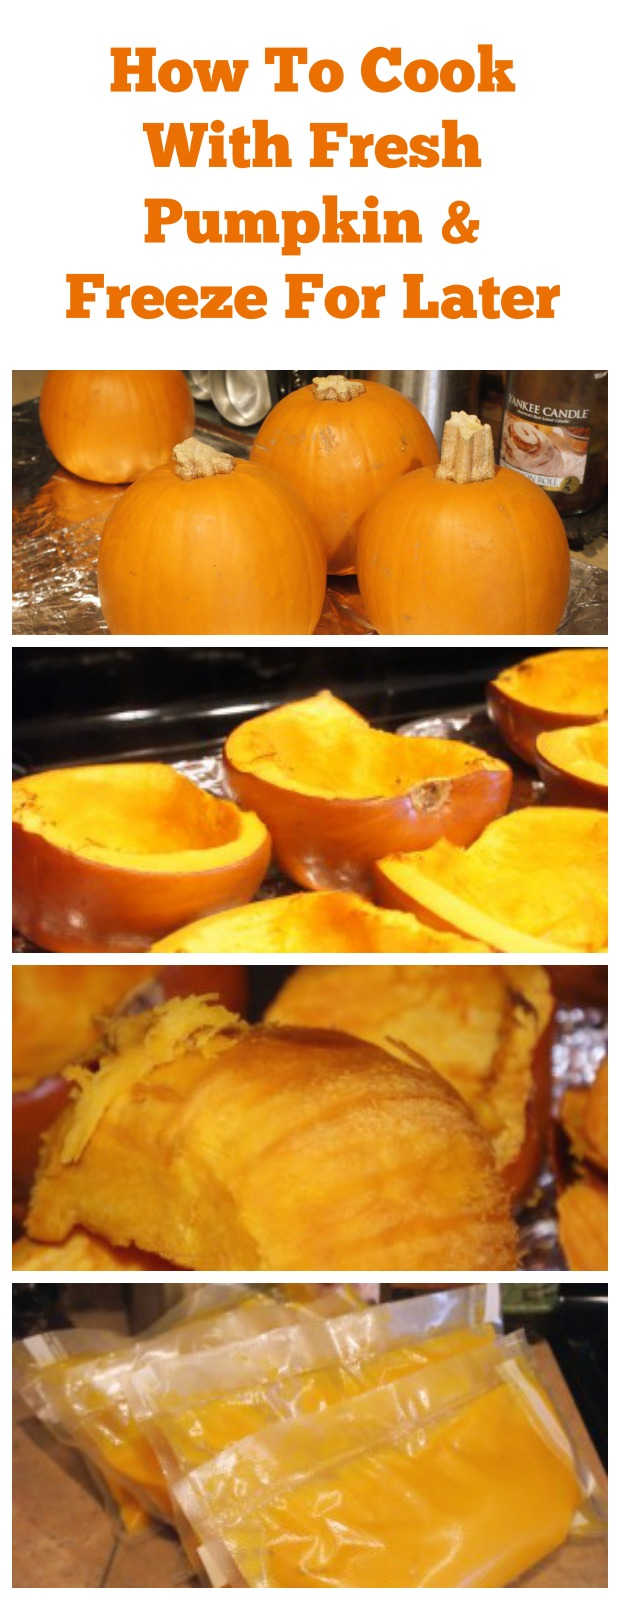 How to cook with fresh pumpkin and freeze it to use later! Just say no to canned pumpkin!